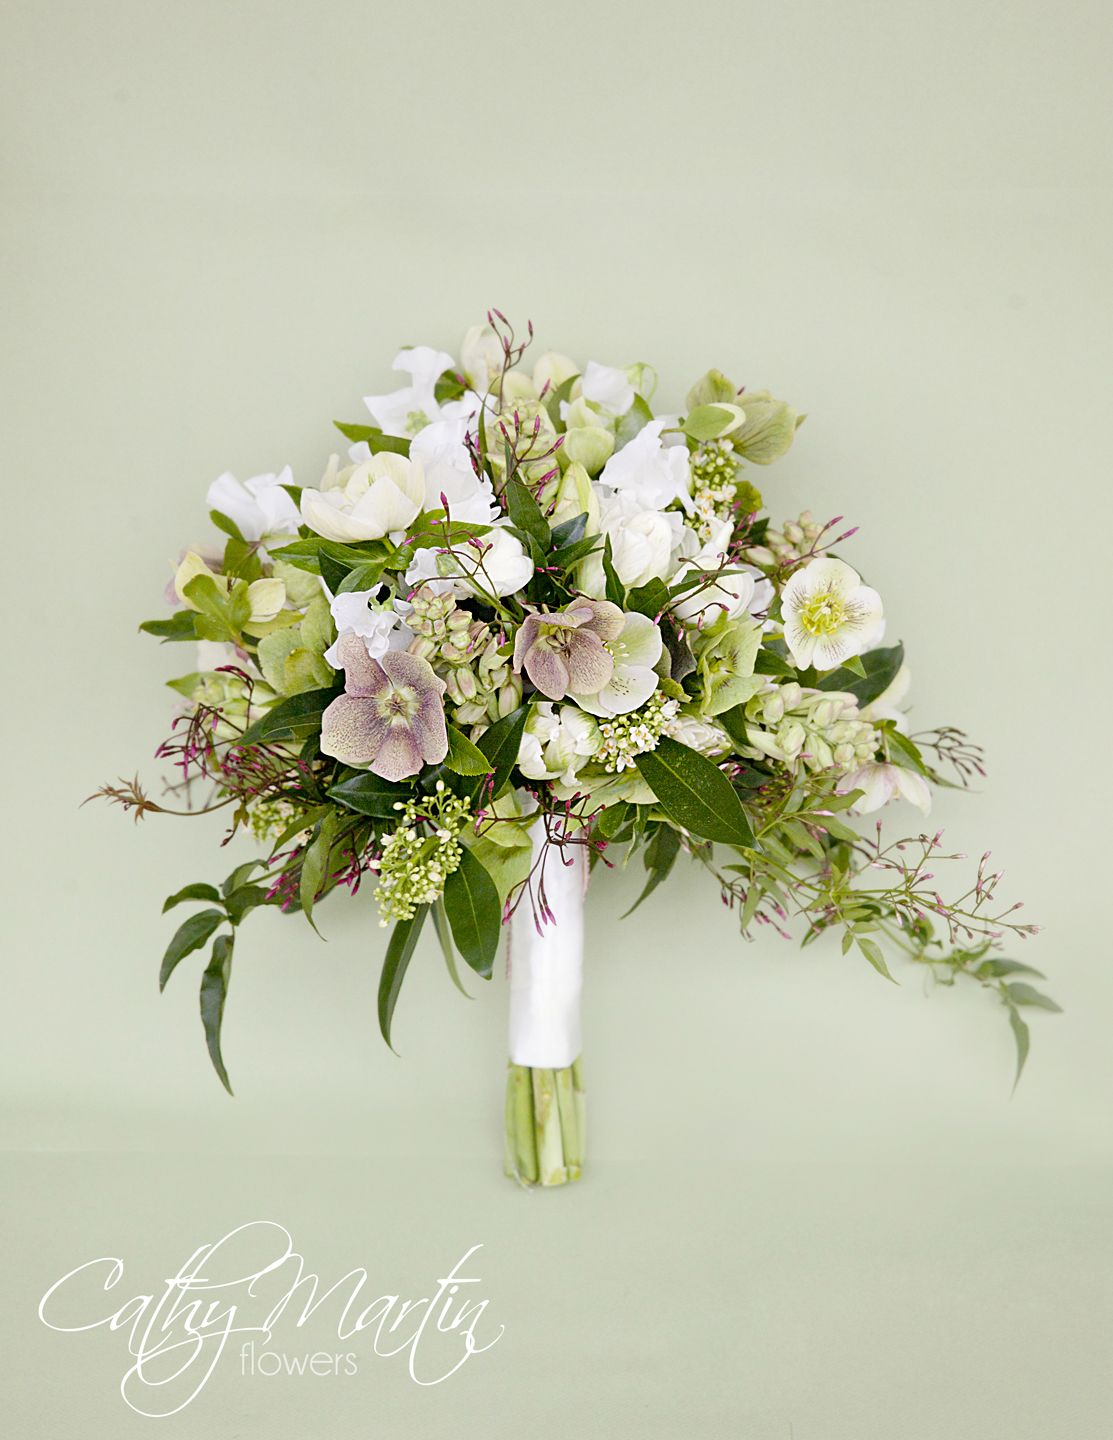 Love this beautiful bouquet featuring hellebores niagara flowers hellebores skimmia tulips sweetpea and jasmine in this cathy martin flowers bouquet early spring izmirmasajfo